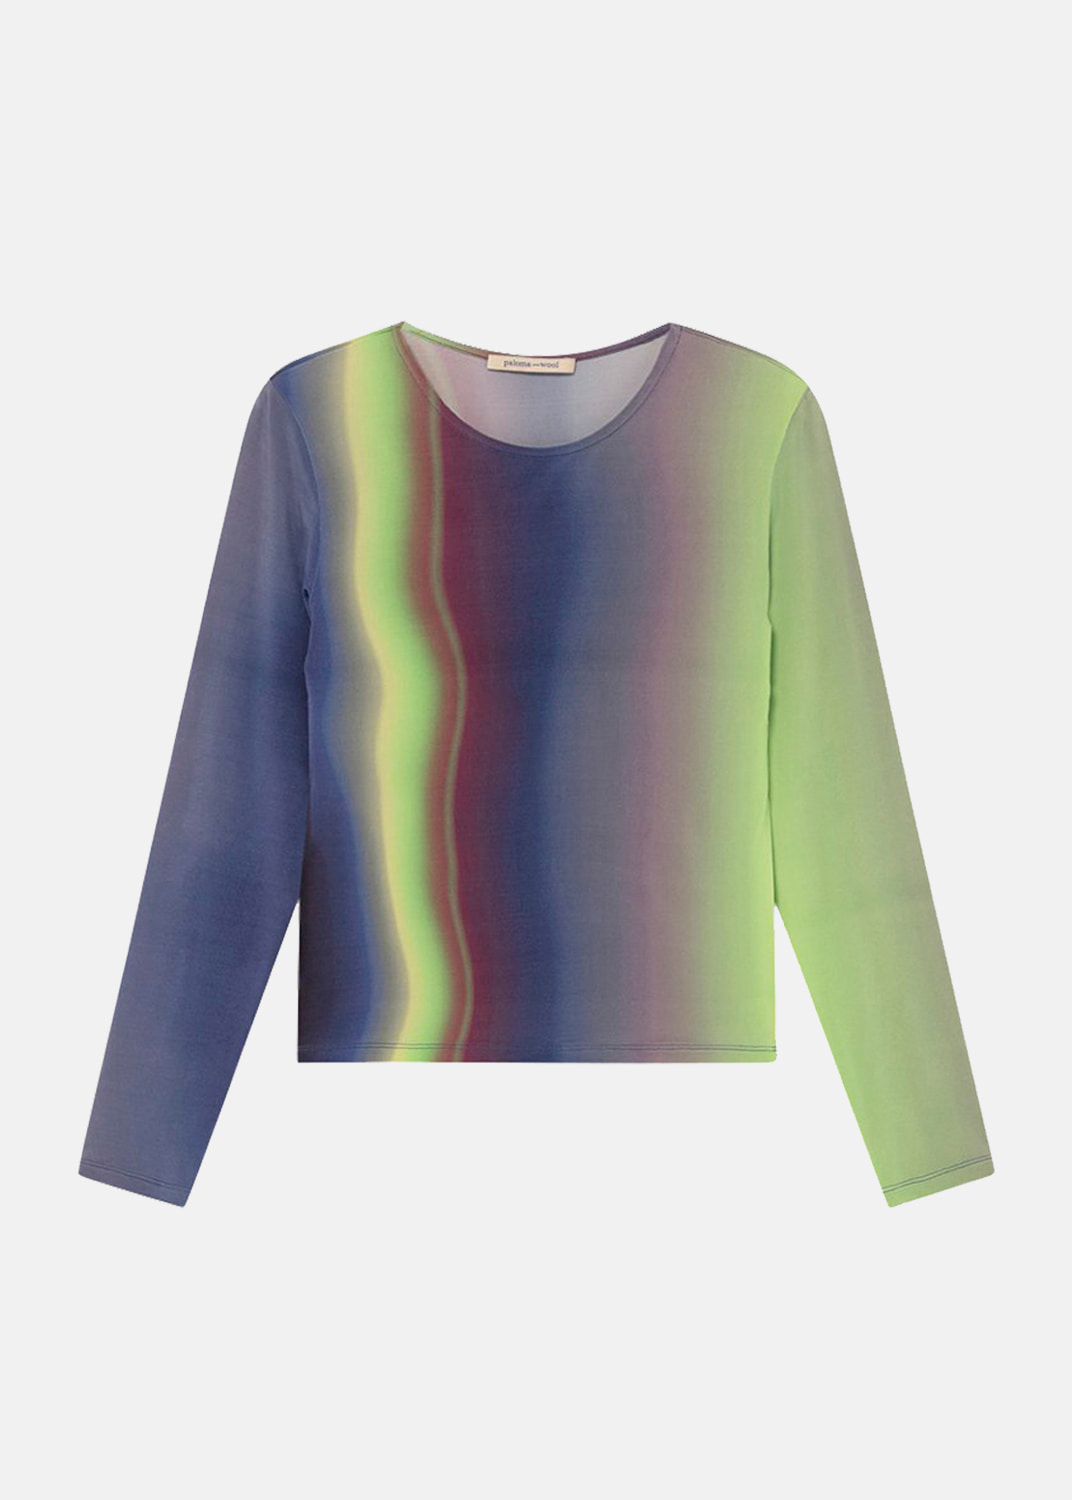 ICELAND TOP